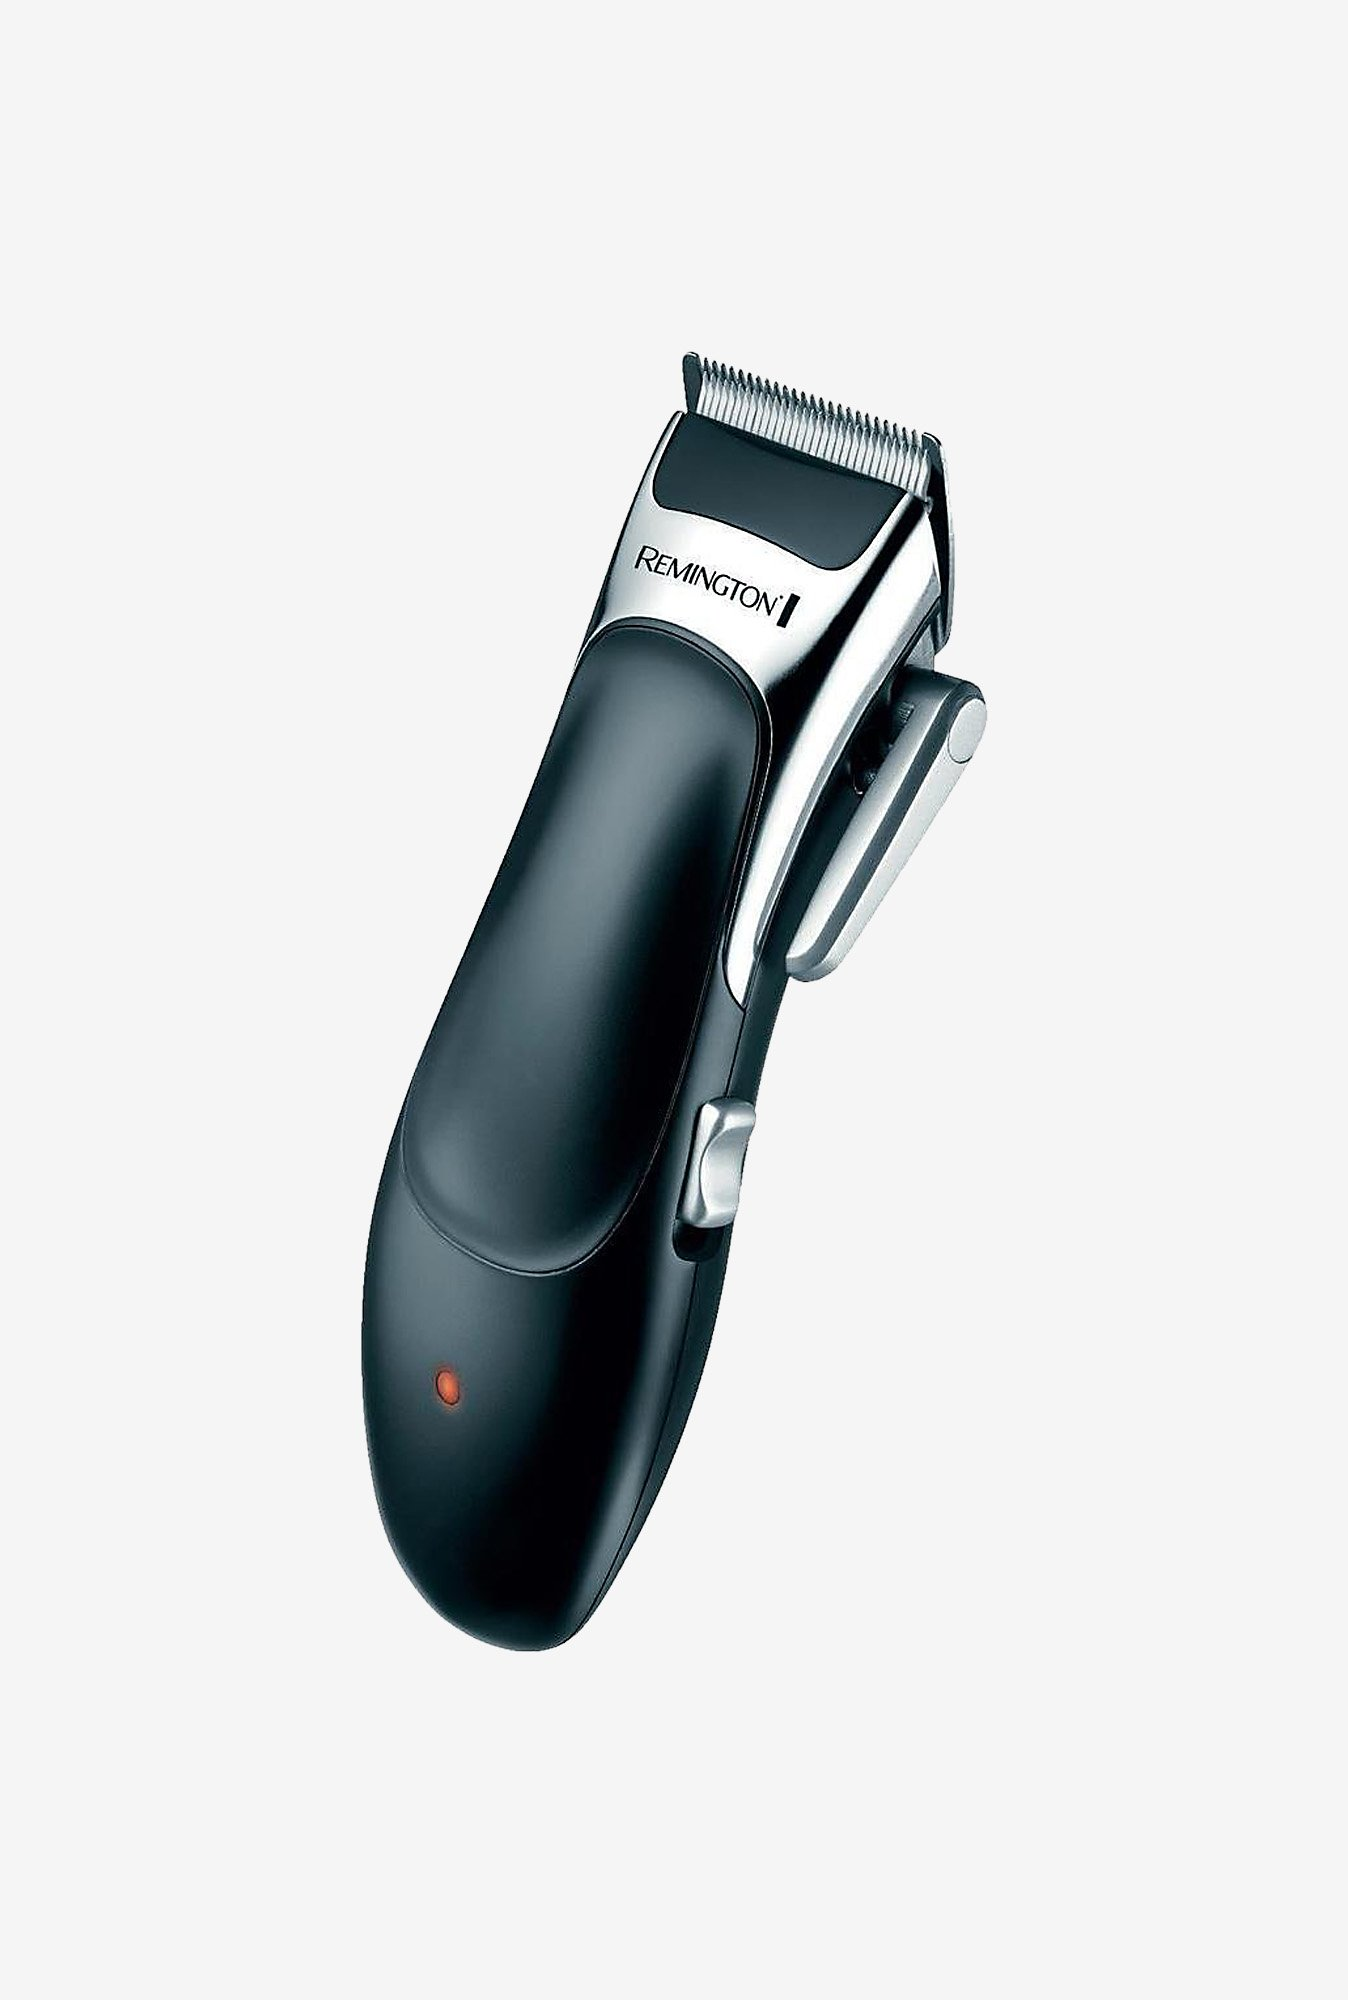 Remington HC363C Stylist Hair Clipper (Black)